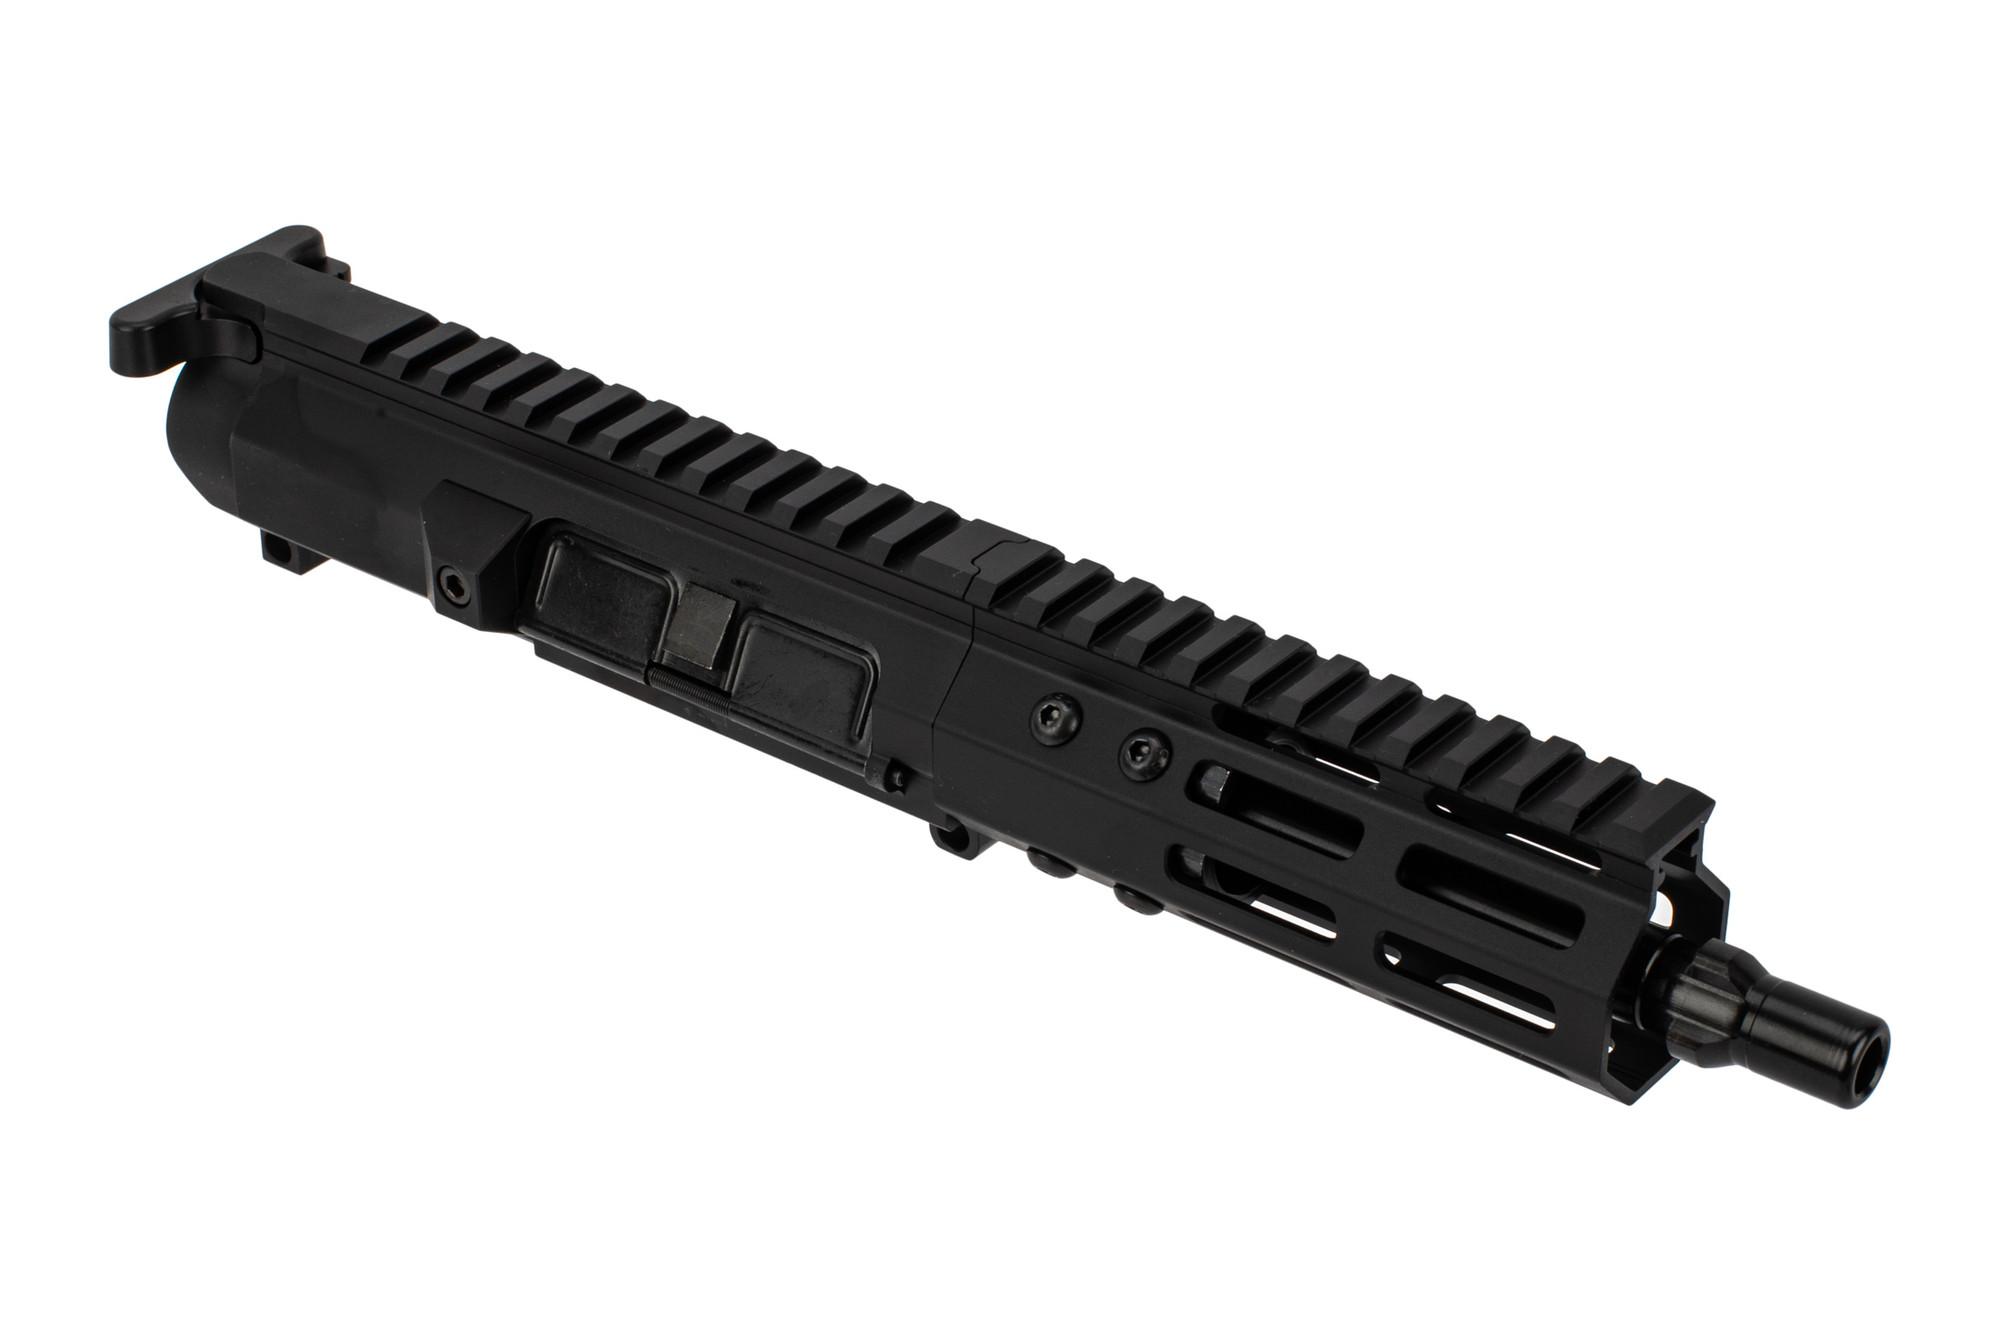 "Foxtrot Mike 7"" Glock Style Ultra Light 9mm Tri-Lug Complete Upper - 5"" M-LOK Rail"